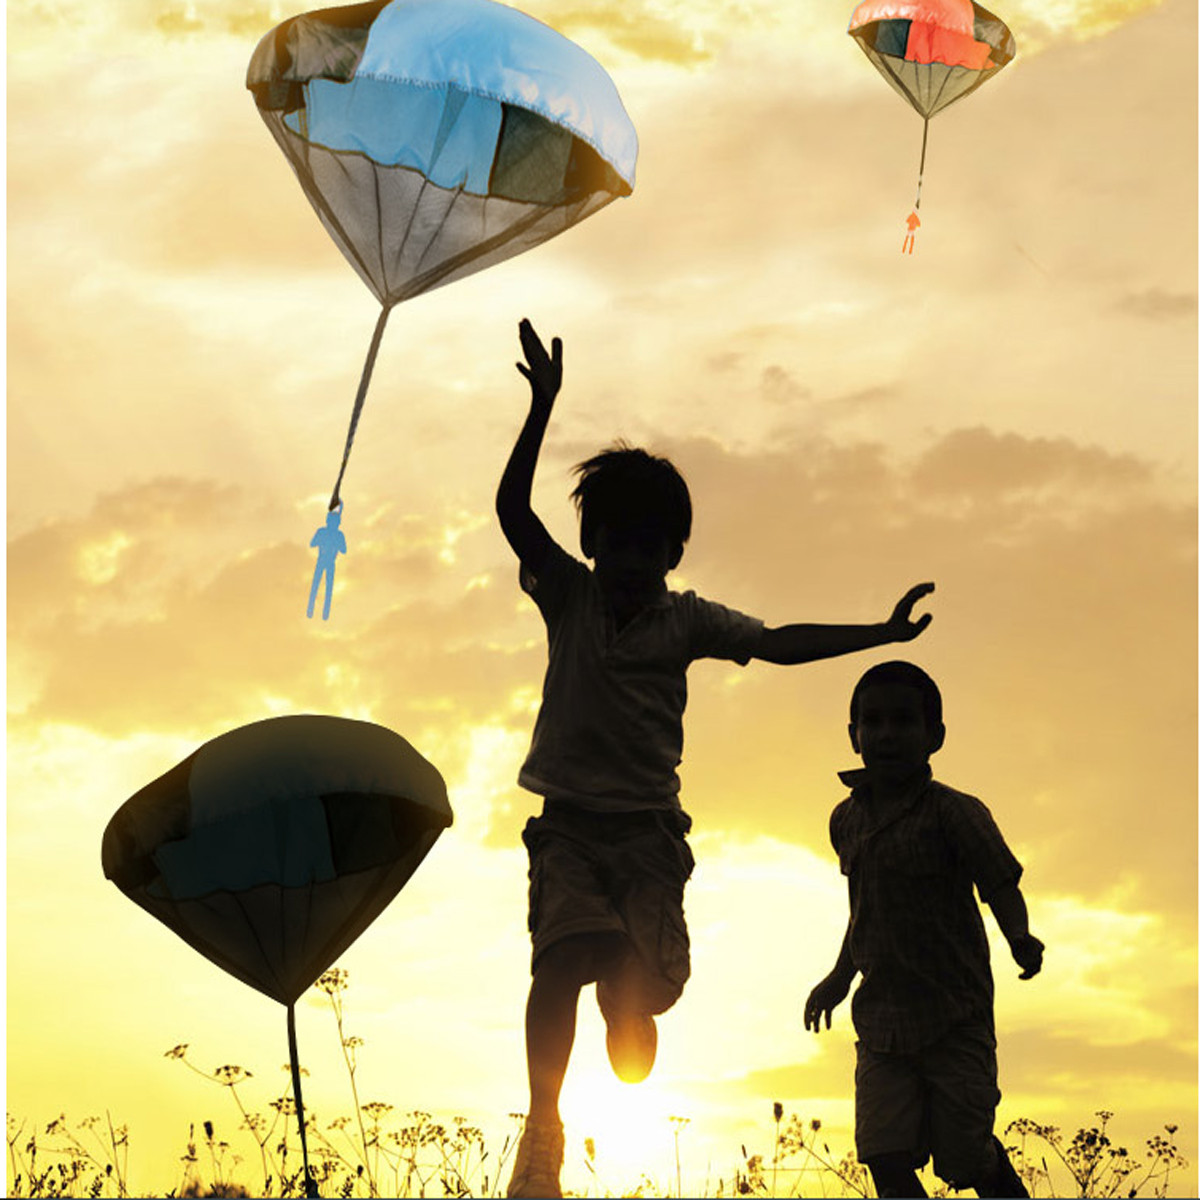 Kids Tangle Toy Hand Throwing Parachute Kite Outdoor Play Game Toy